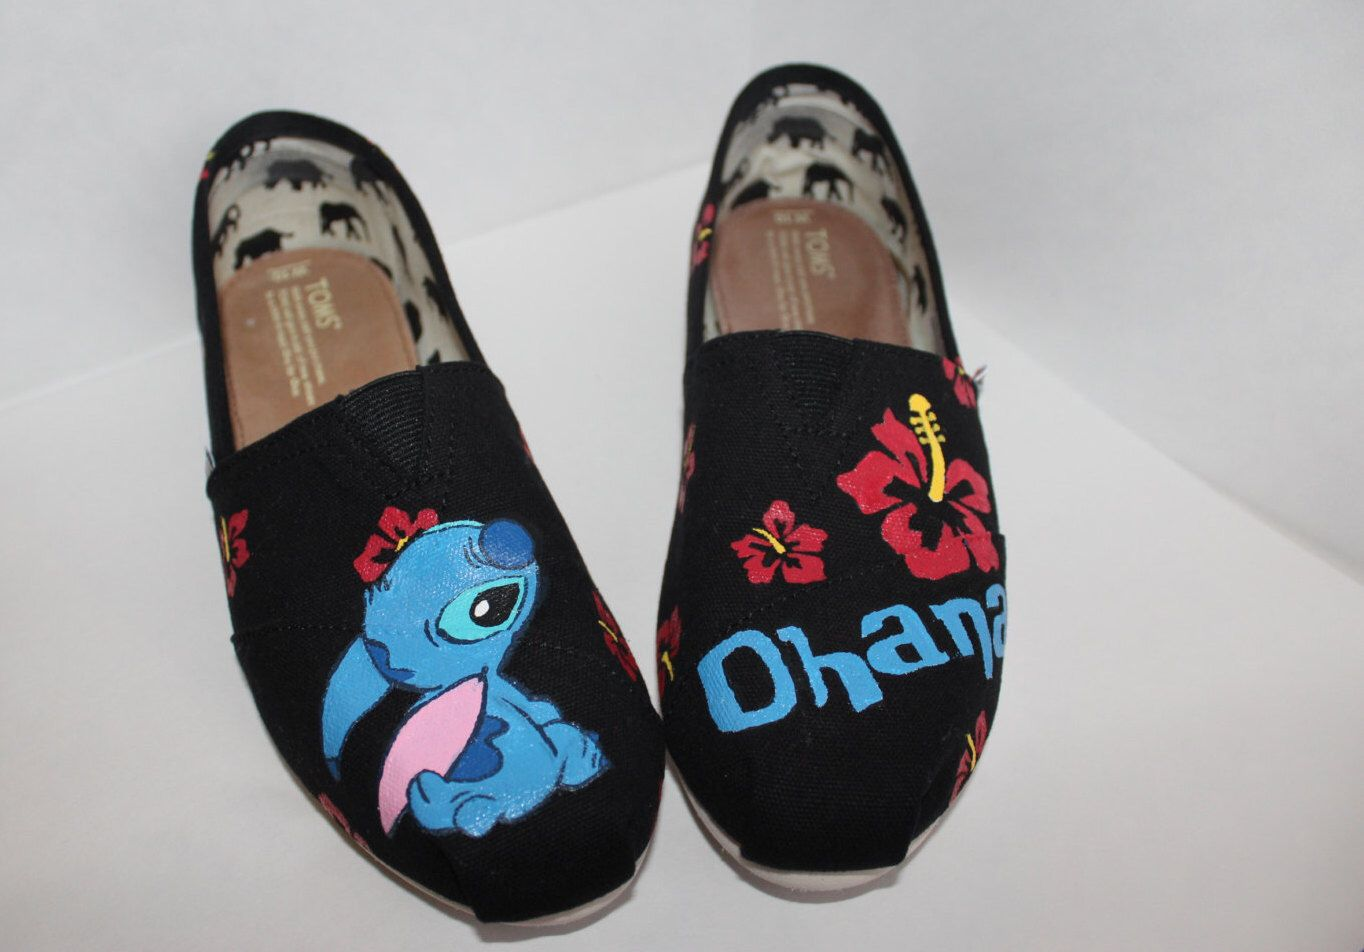 15++ Toms wedding shoes zappos ideas in 2021